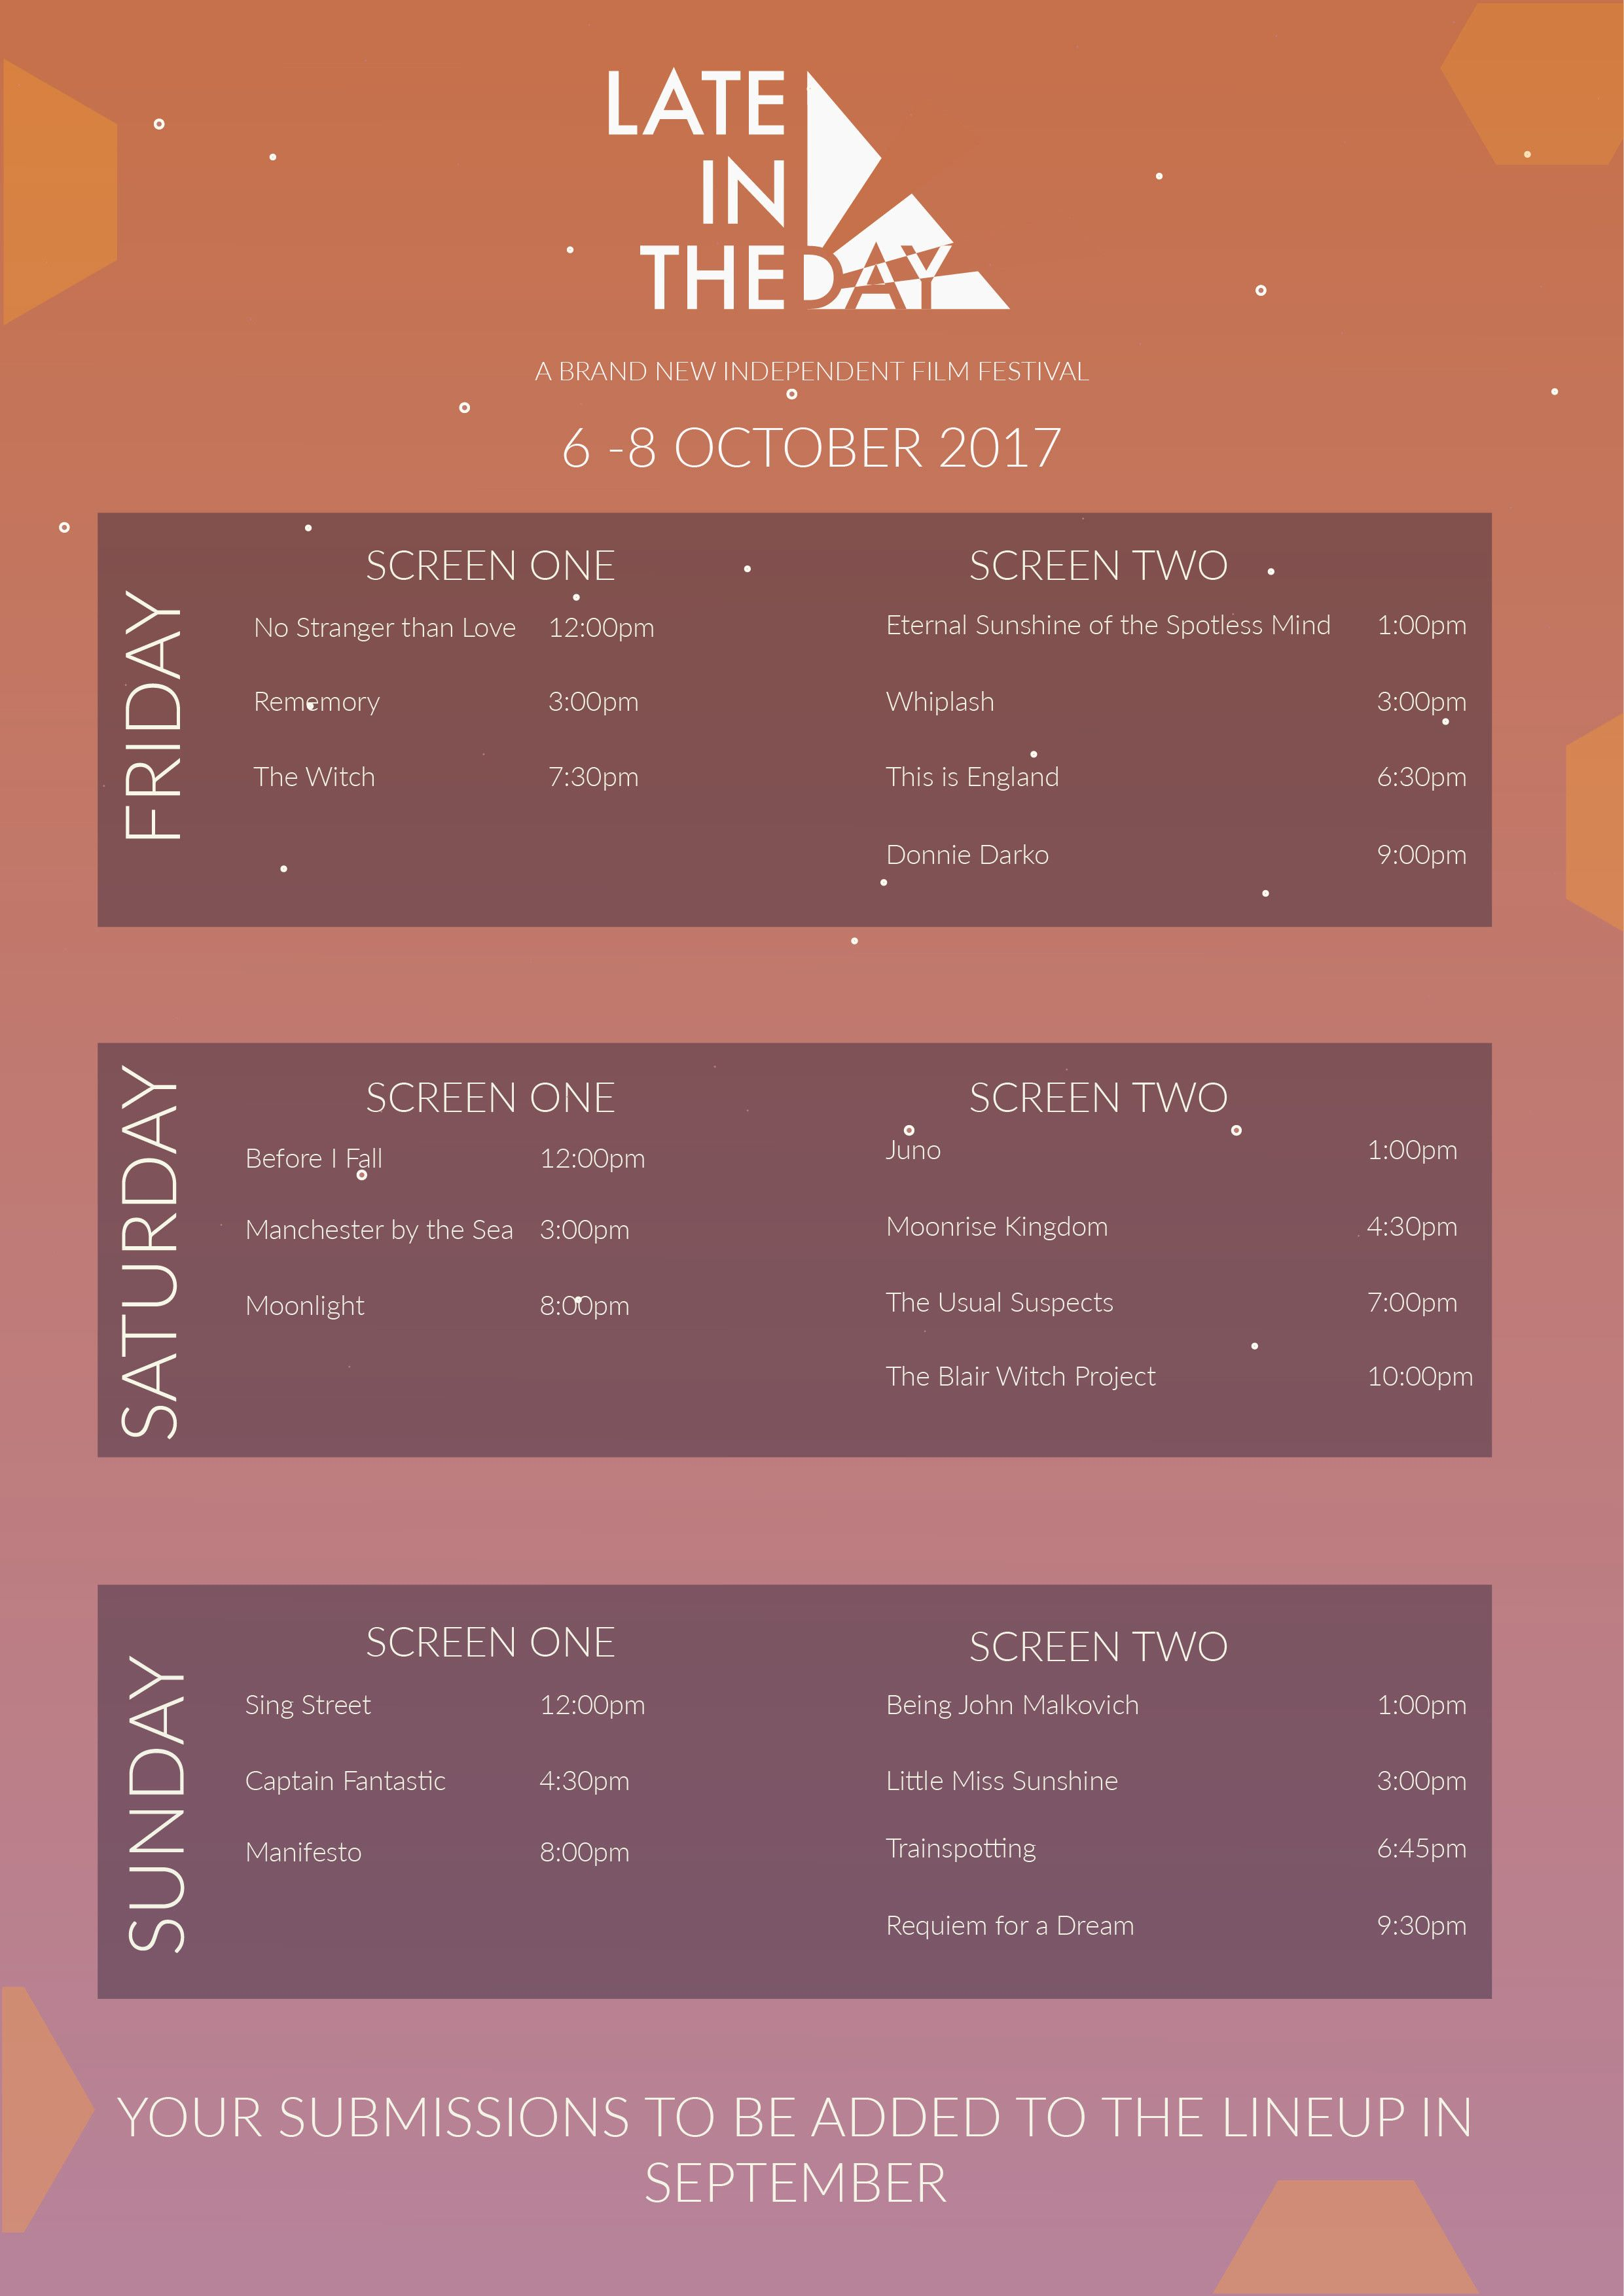 Late In The Day Schedule Poster For Fictitious Film Festival Schedule Design Layout Schedule Design Event Schedule Design